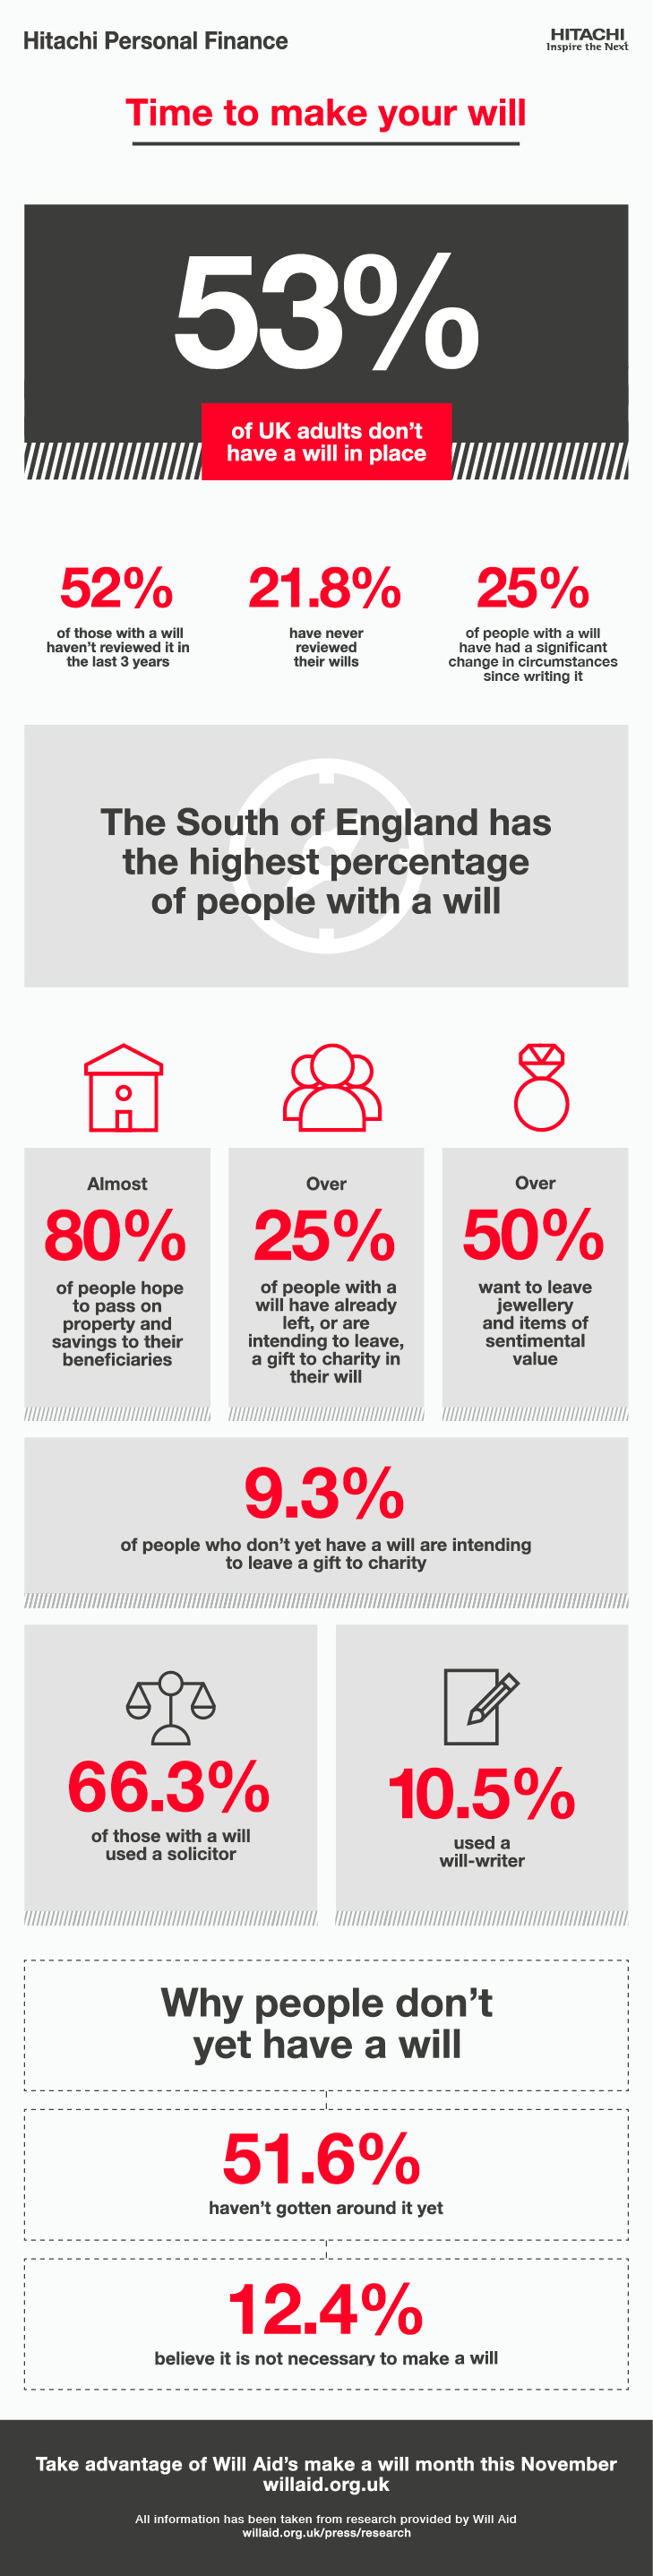 Infographic showing the percentage of people who have a will in place in the UK